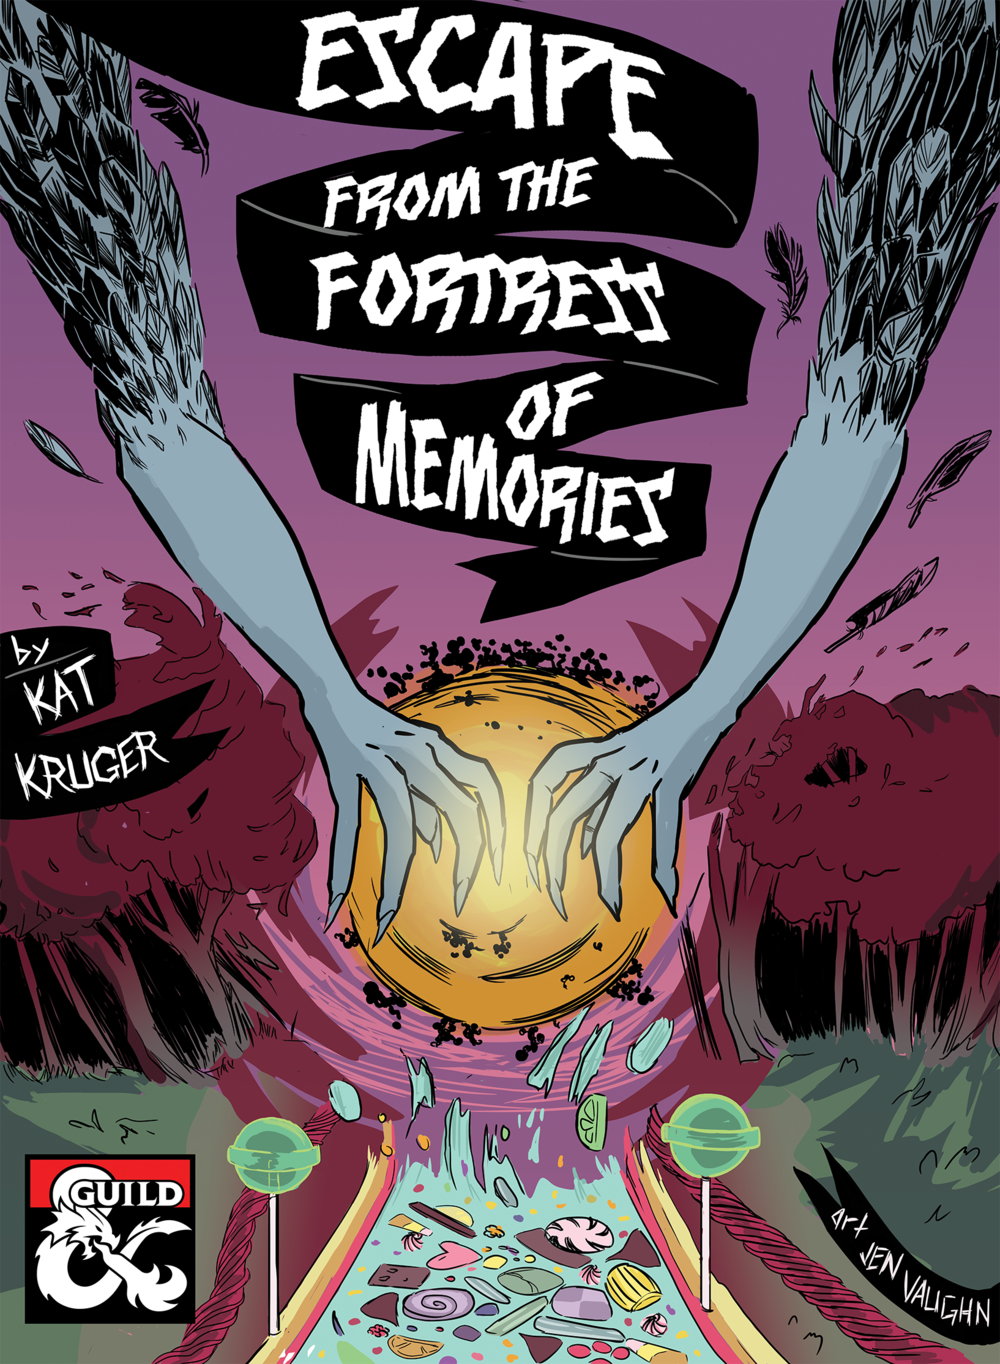 Escape from the Fortress of Memories - Written by Kat KrugerA two-hour adventure for 1st-4th level characters.A dmsguild.com Copper Best Seller!In the bustling town of Phandalin, a young girl goes missing one night. The adventuring party is drawn into a strange dreamlike world by the whims of the Raven Queen. In order to escape, they must help the girl fight the very things that spawn from her imagination.